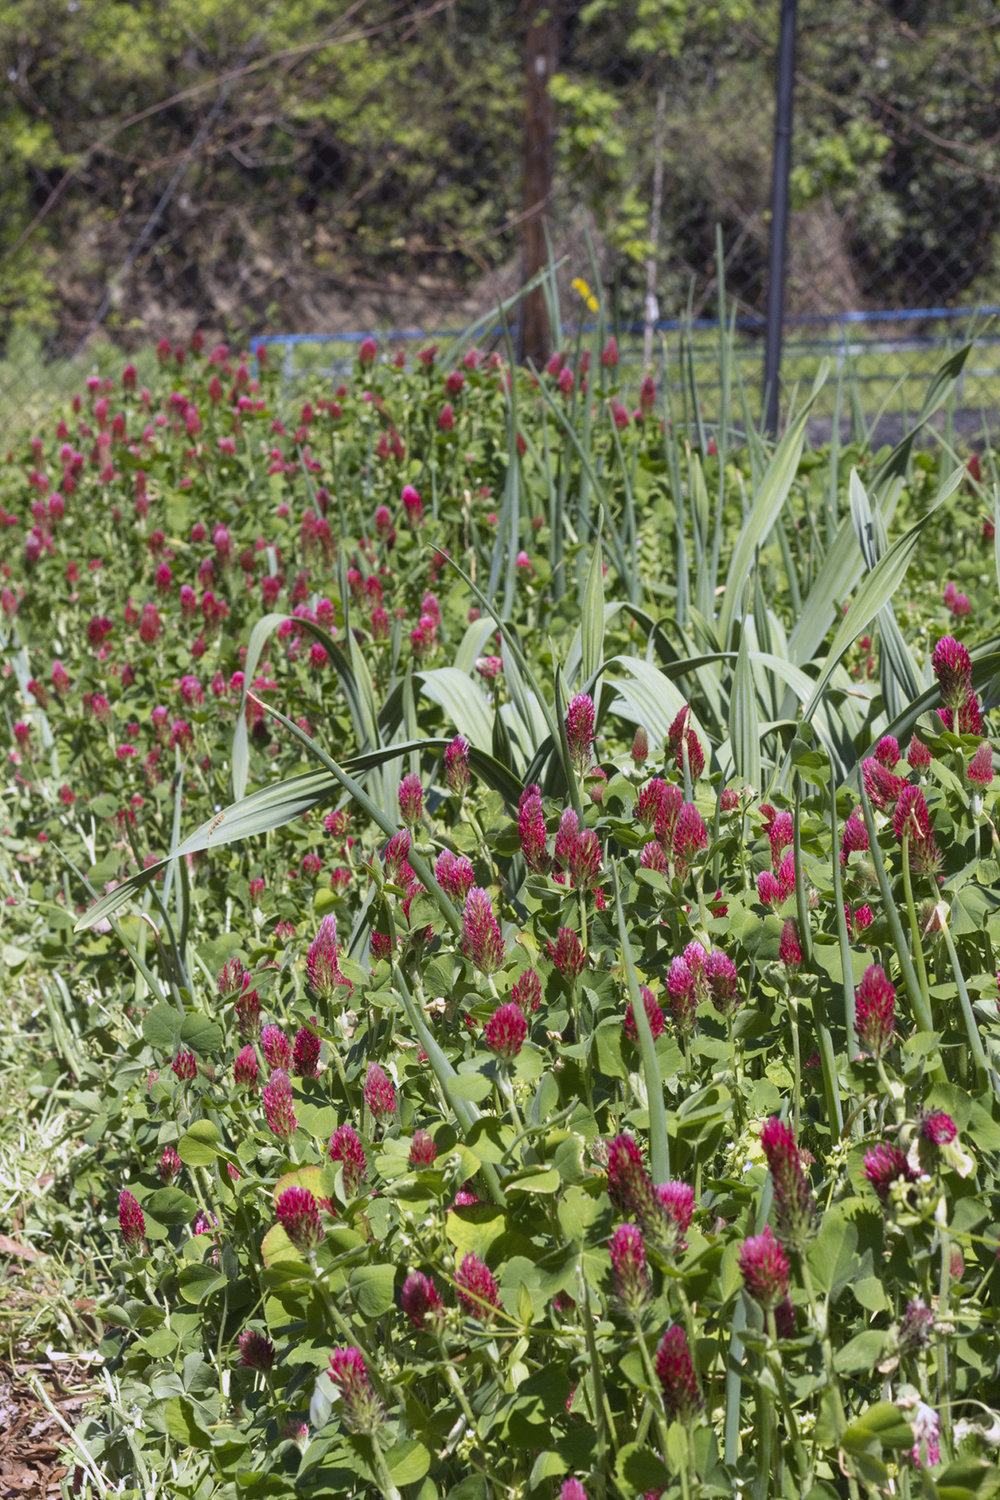 Cover crops feed the soil, attract beneficial insects, and look pretty, too!